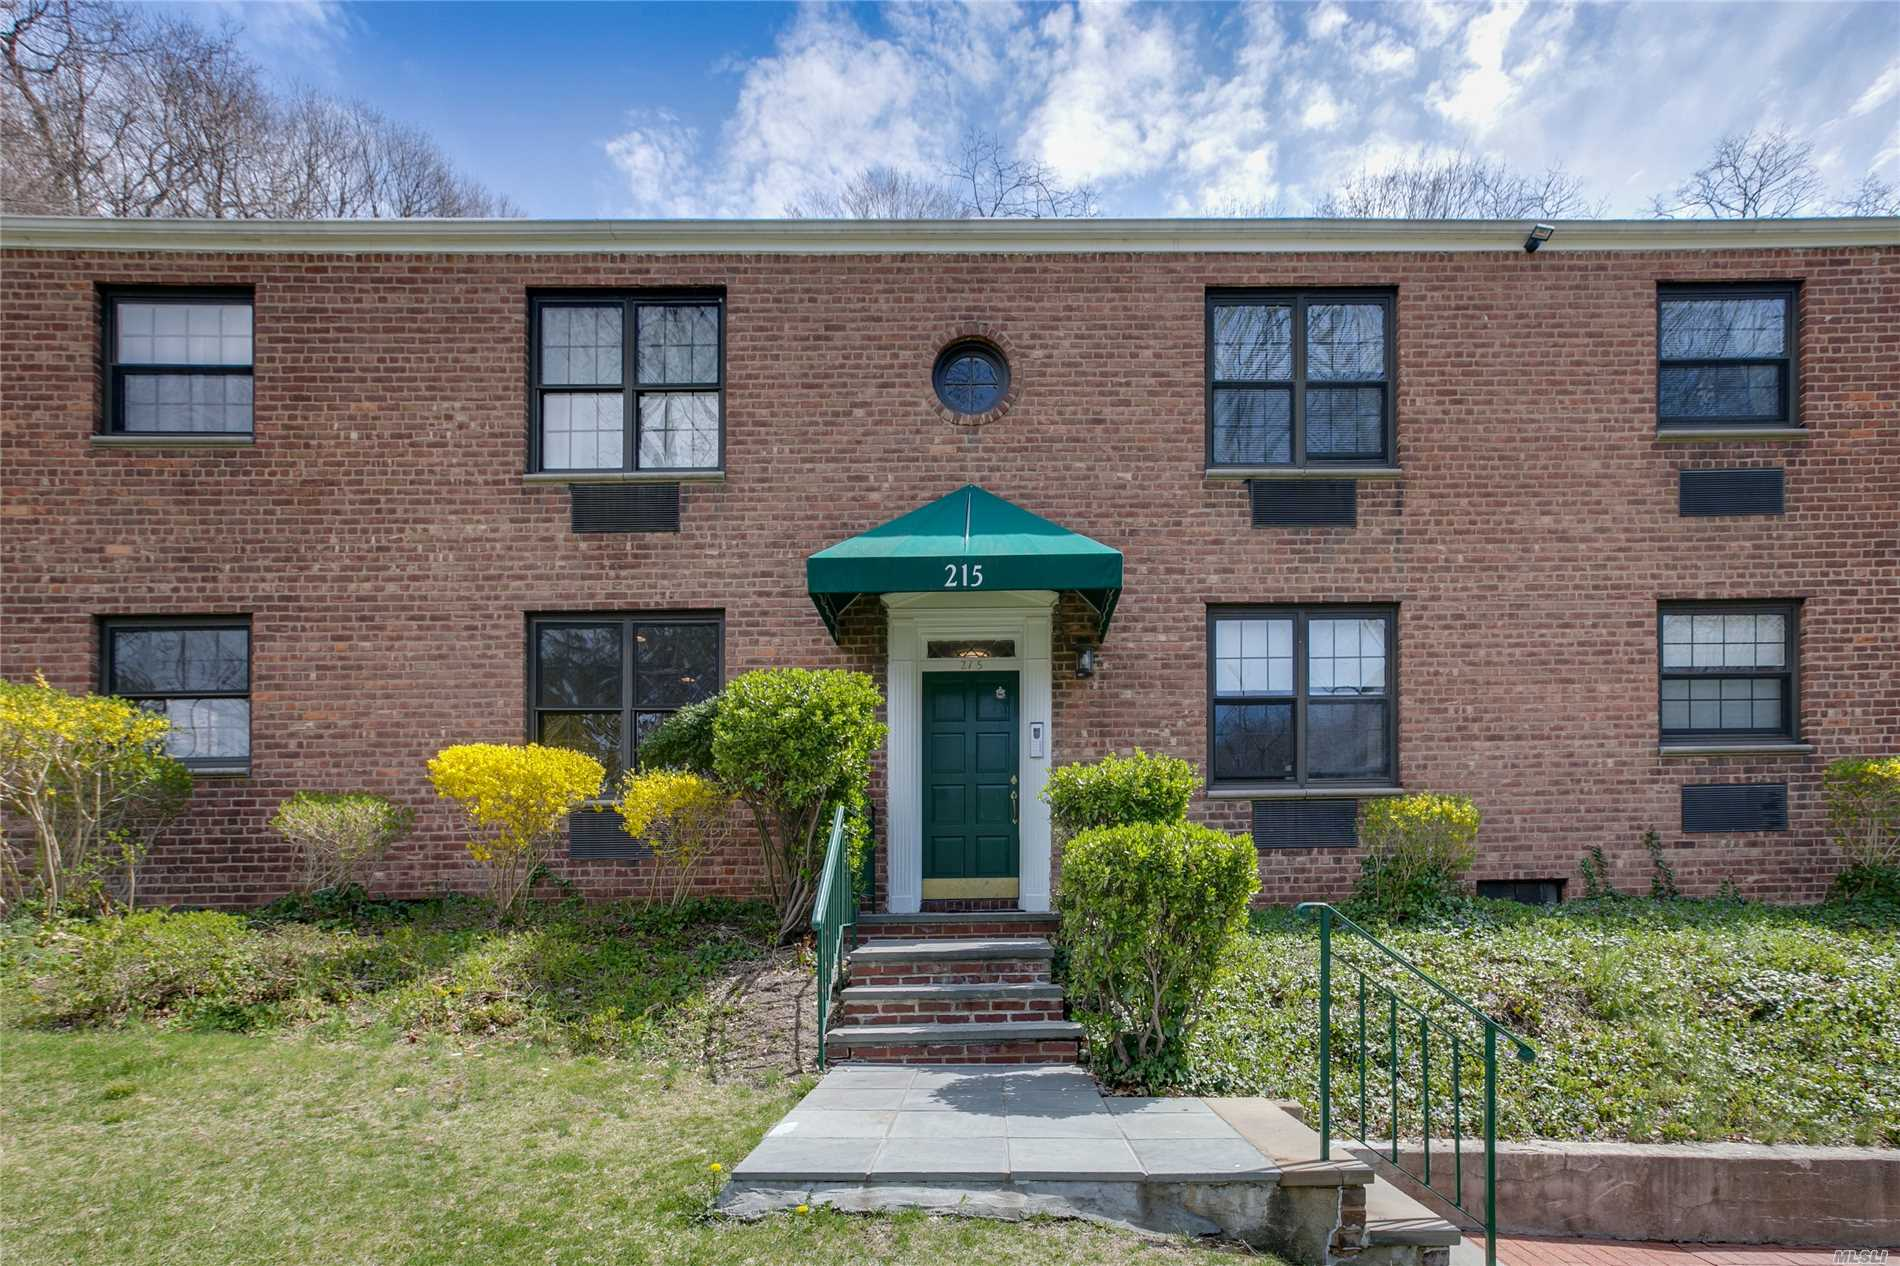 Roslyn. Top Floor 2 Bedroom/1 Bath Apartment In Ideally Located Garden Apartment Community. Polished Hardwood Floors Throughout, Updated Kitchen And Bath, Great Closet Space, & Eat In Kitchen W/Gas Cooking. On Site Parking Available (Add'l S). Resident Super. Laundry On-Site.